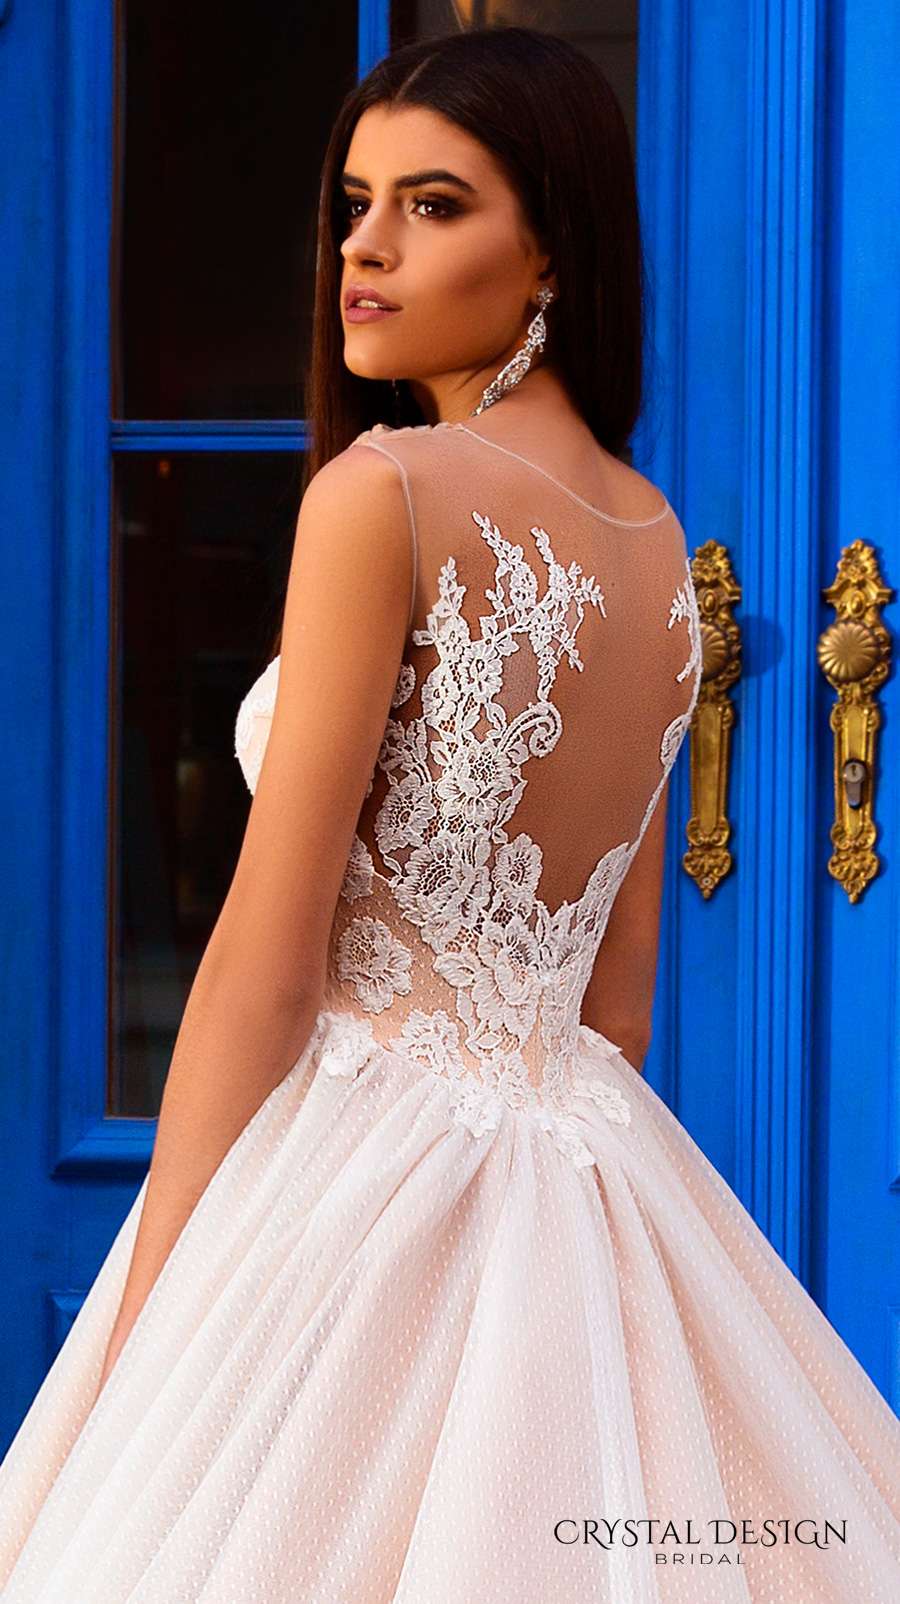 crystal design bridal 2016 sleeveless illusion round neckline v neck lace embellished bodice gorgeous princess ball gown wedding dress chapel train (avrora) zbv